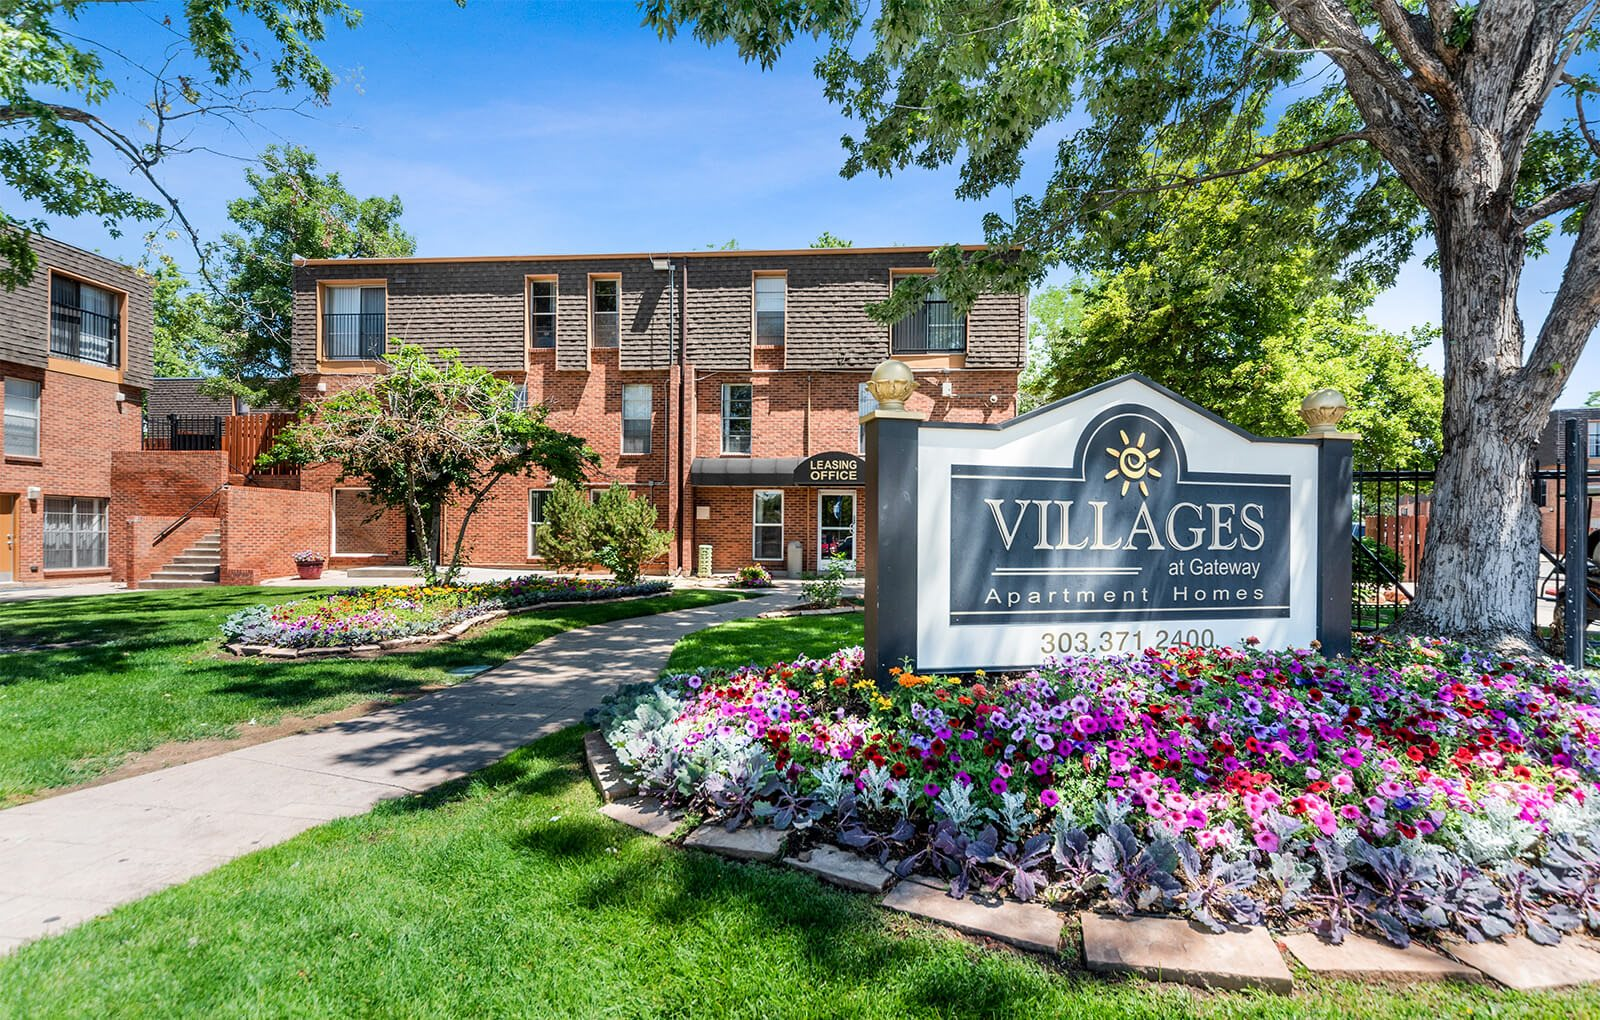 Villages at Gateway sign, landscaping and apartment exterior